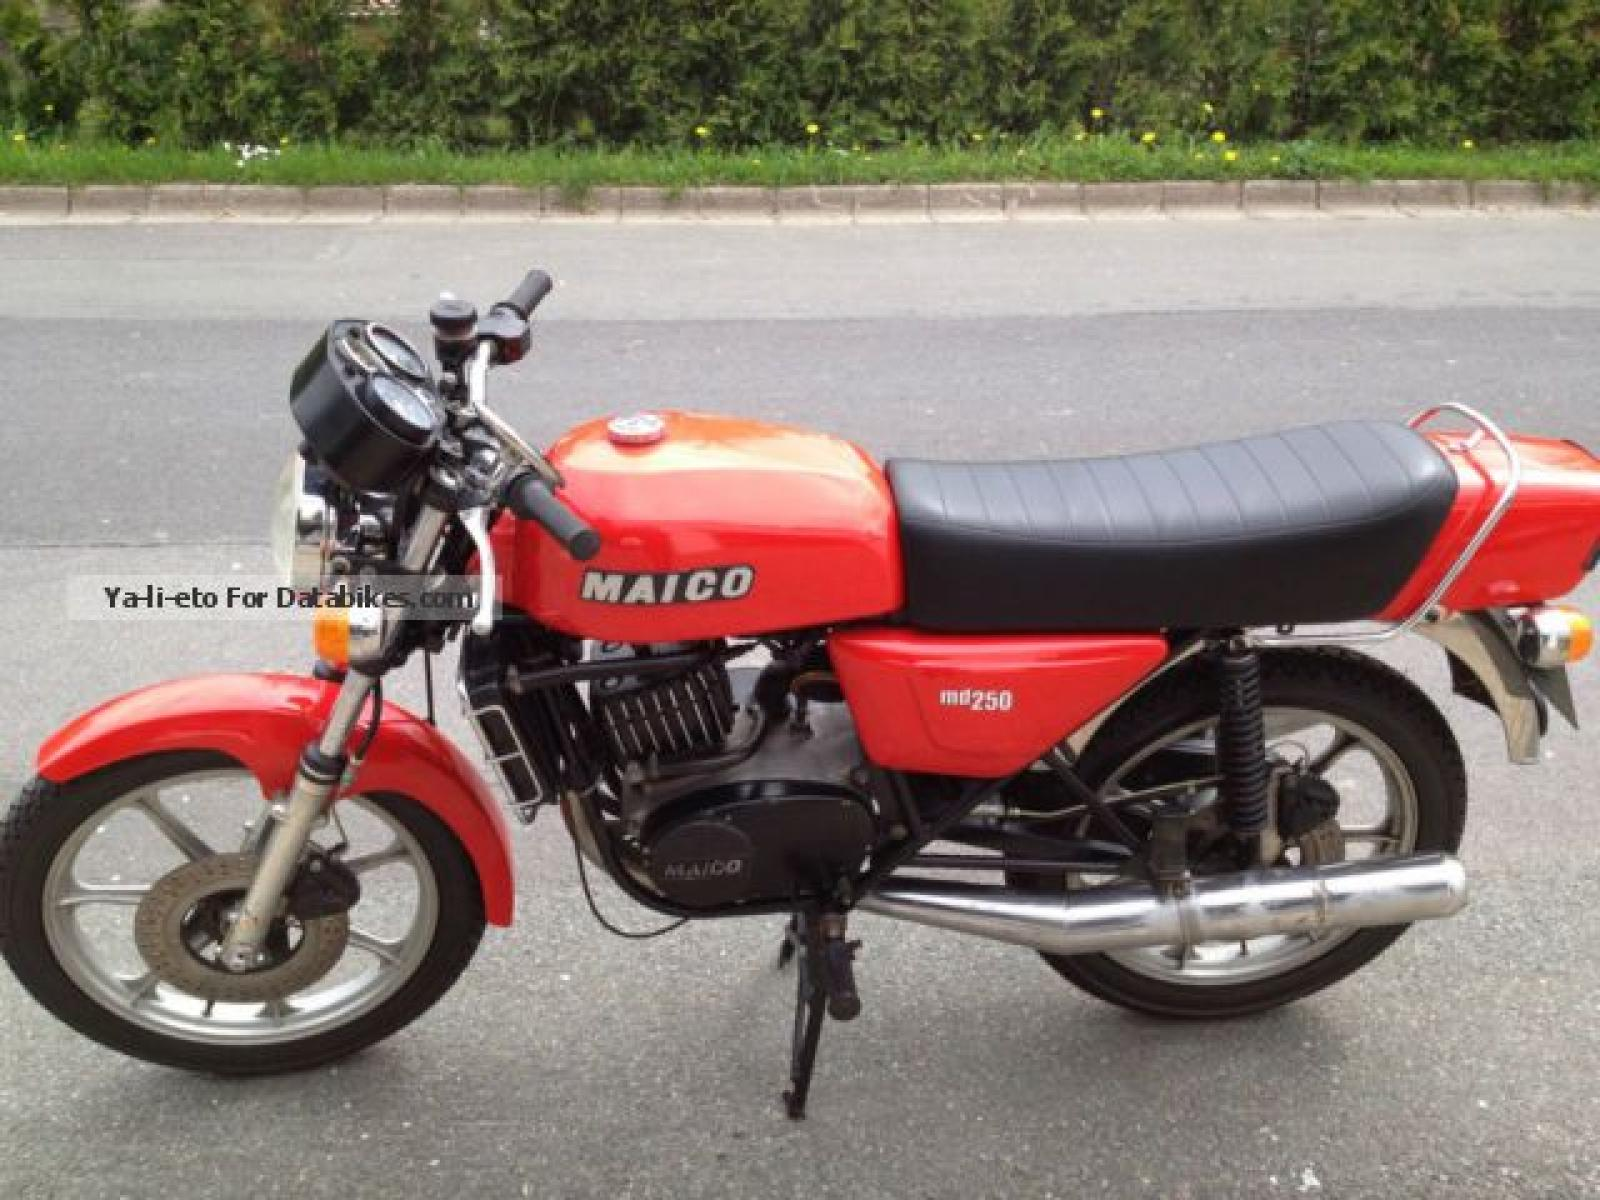 Maico MD 250 WK 1981 images #103500